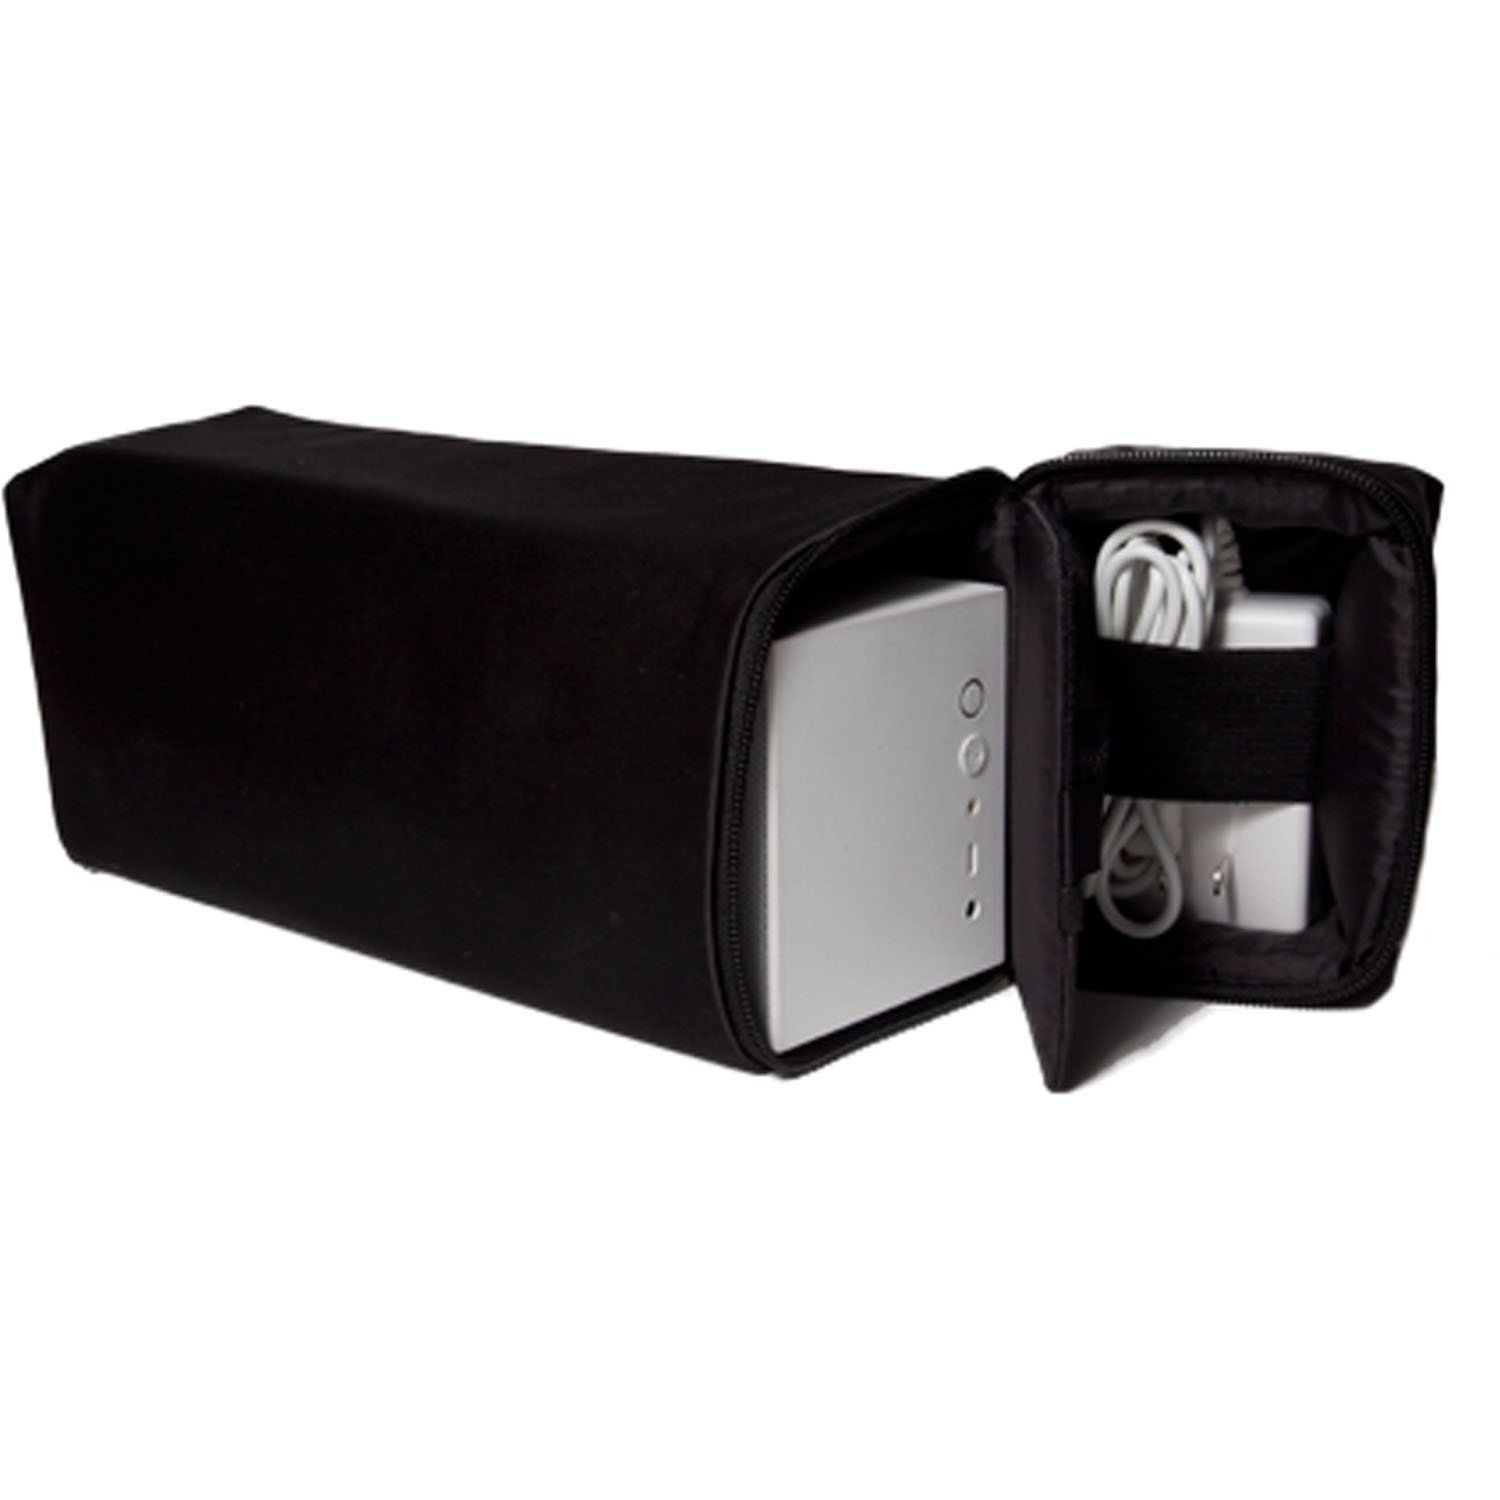 Jawbone BIG JAMBOX Carrying Case - Retail Packaging (Black)